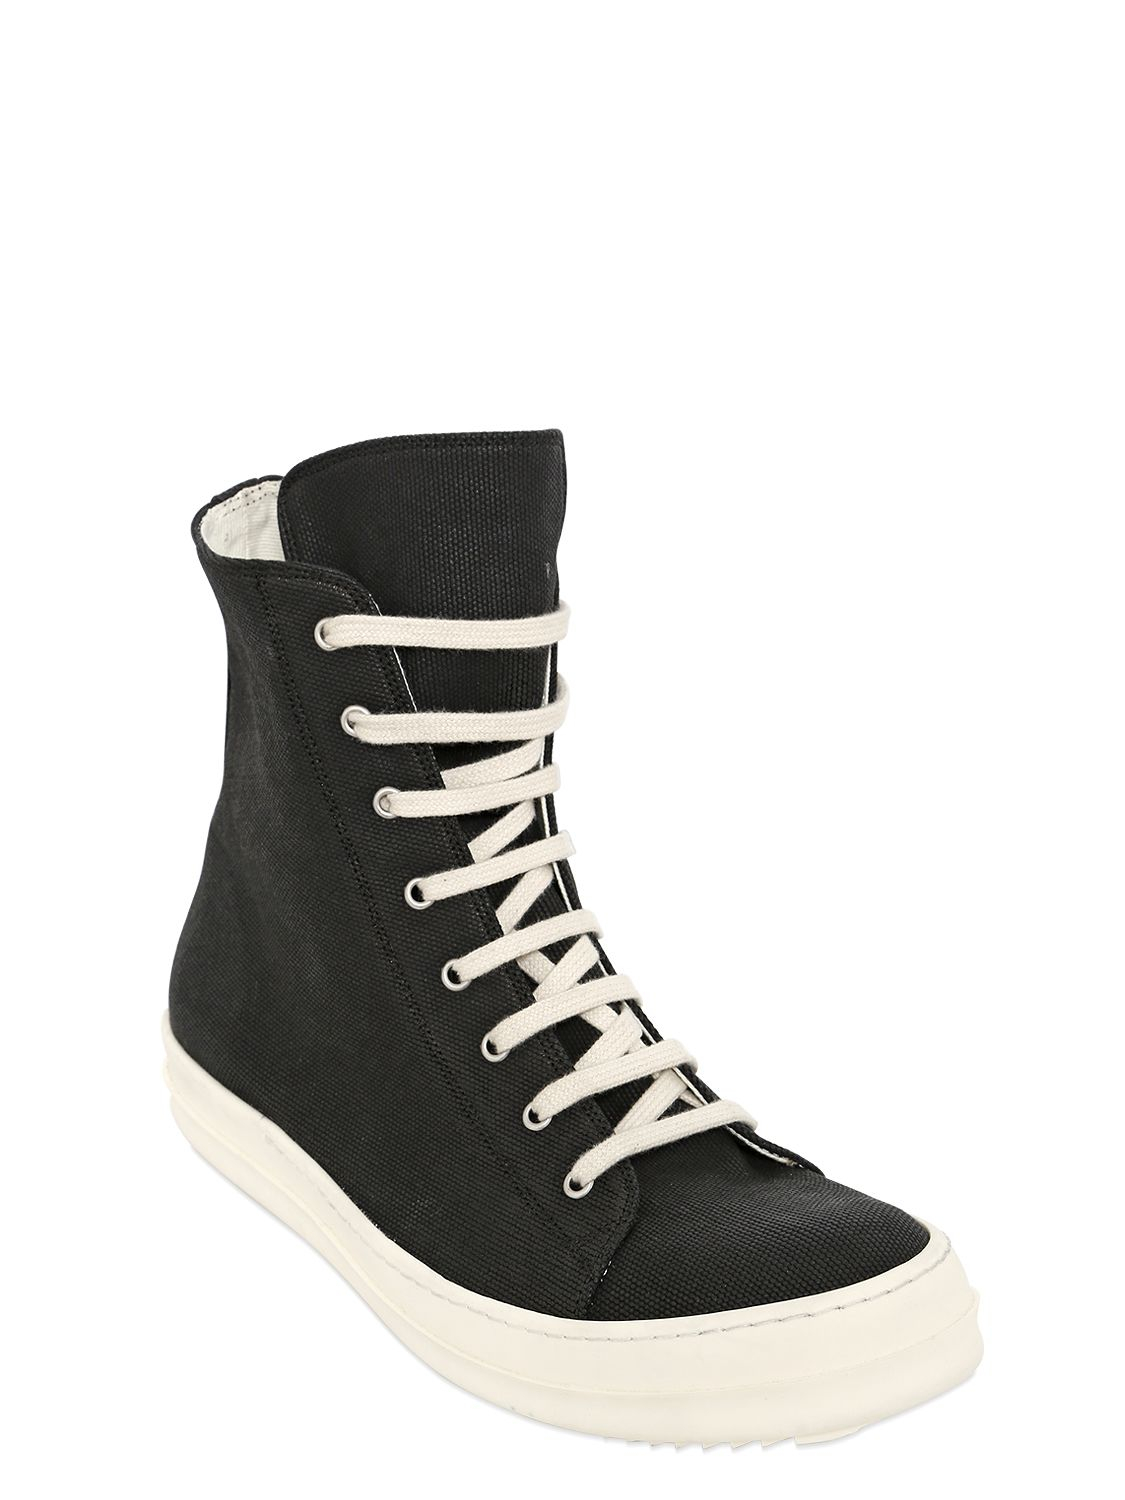 rick owens drkshdw cotton canvas high top sneakers in